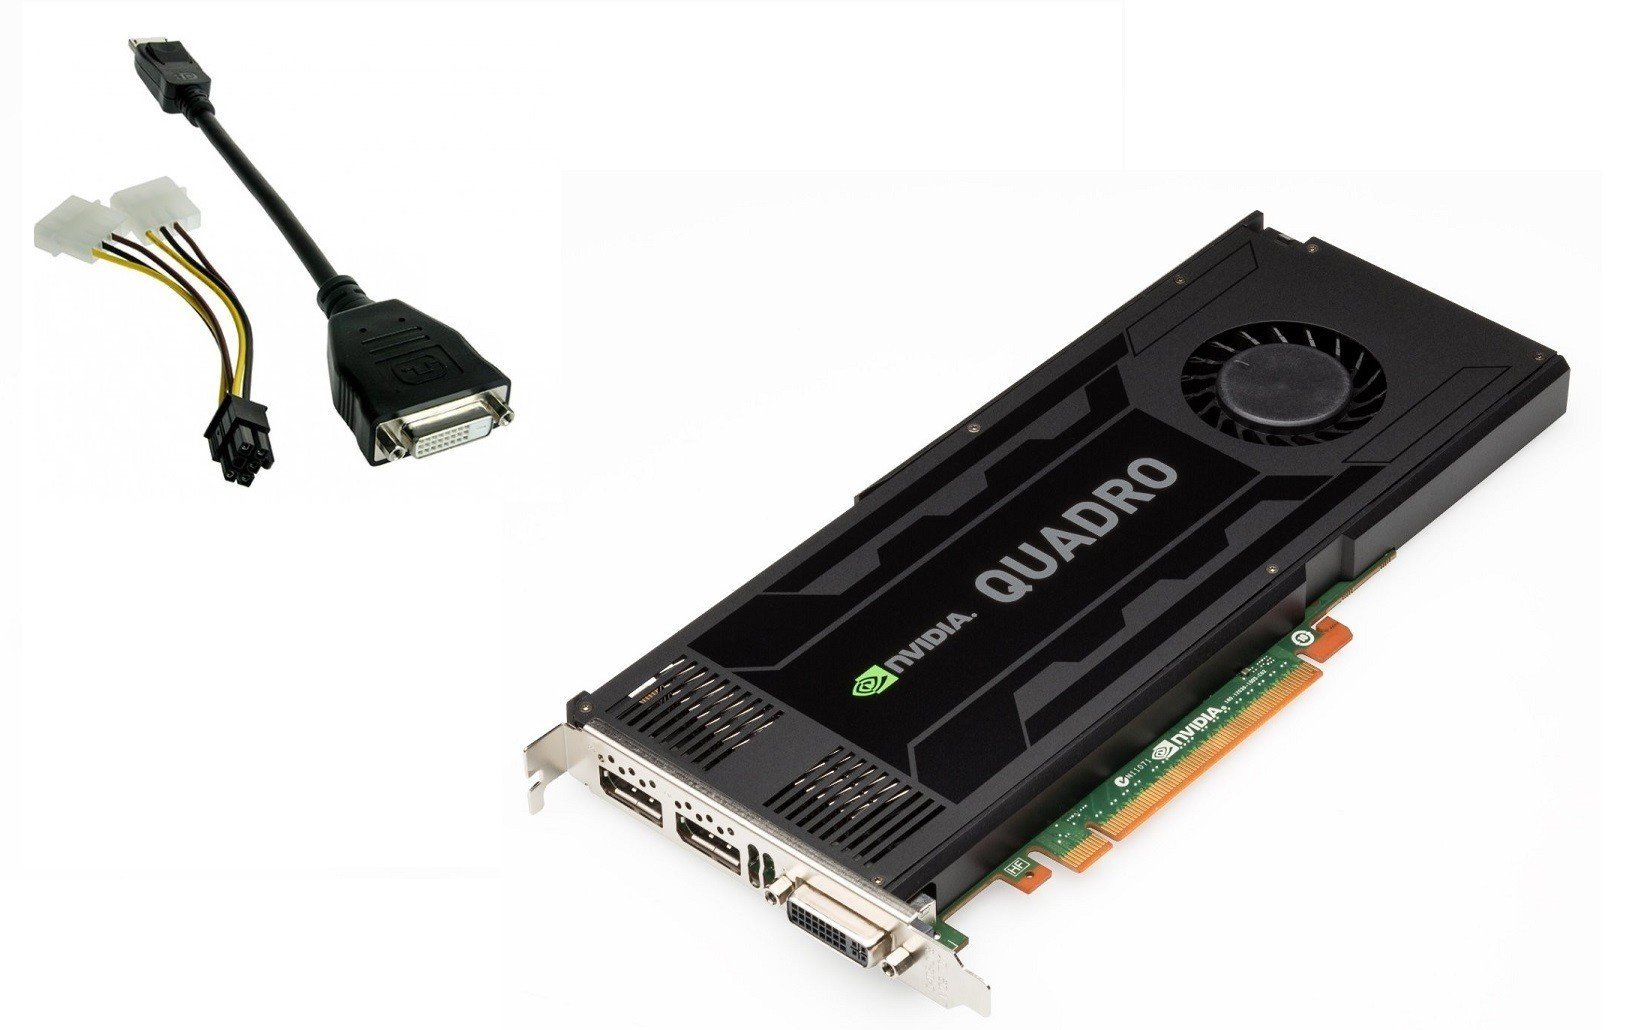 Nvidia Quadro K4000 3GB GDDR5 PCIe 2.0 x16 Dual DisplayPort DVI-I Graphics Card HP 700104-001